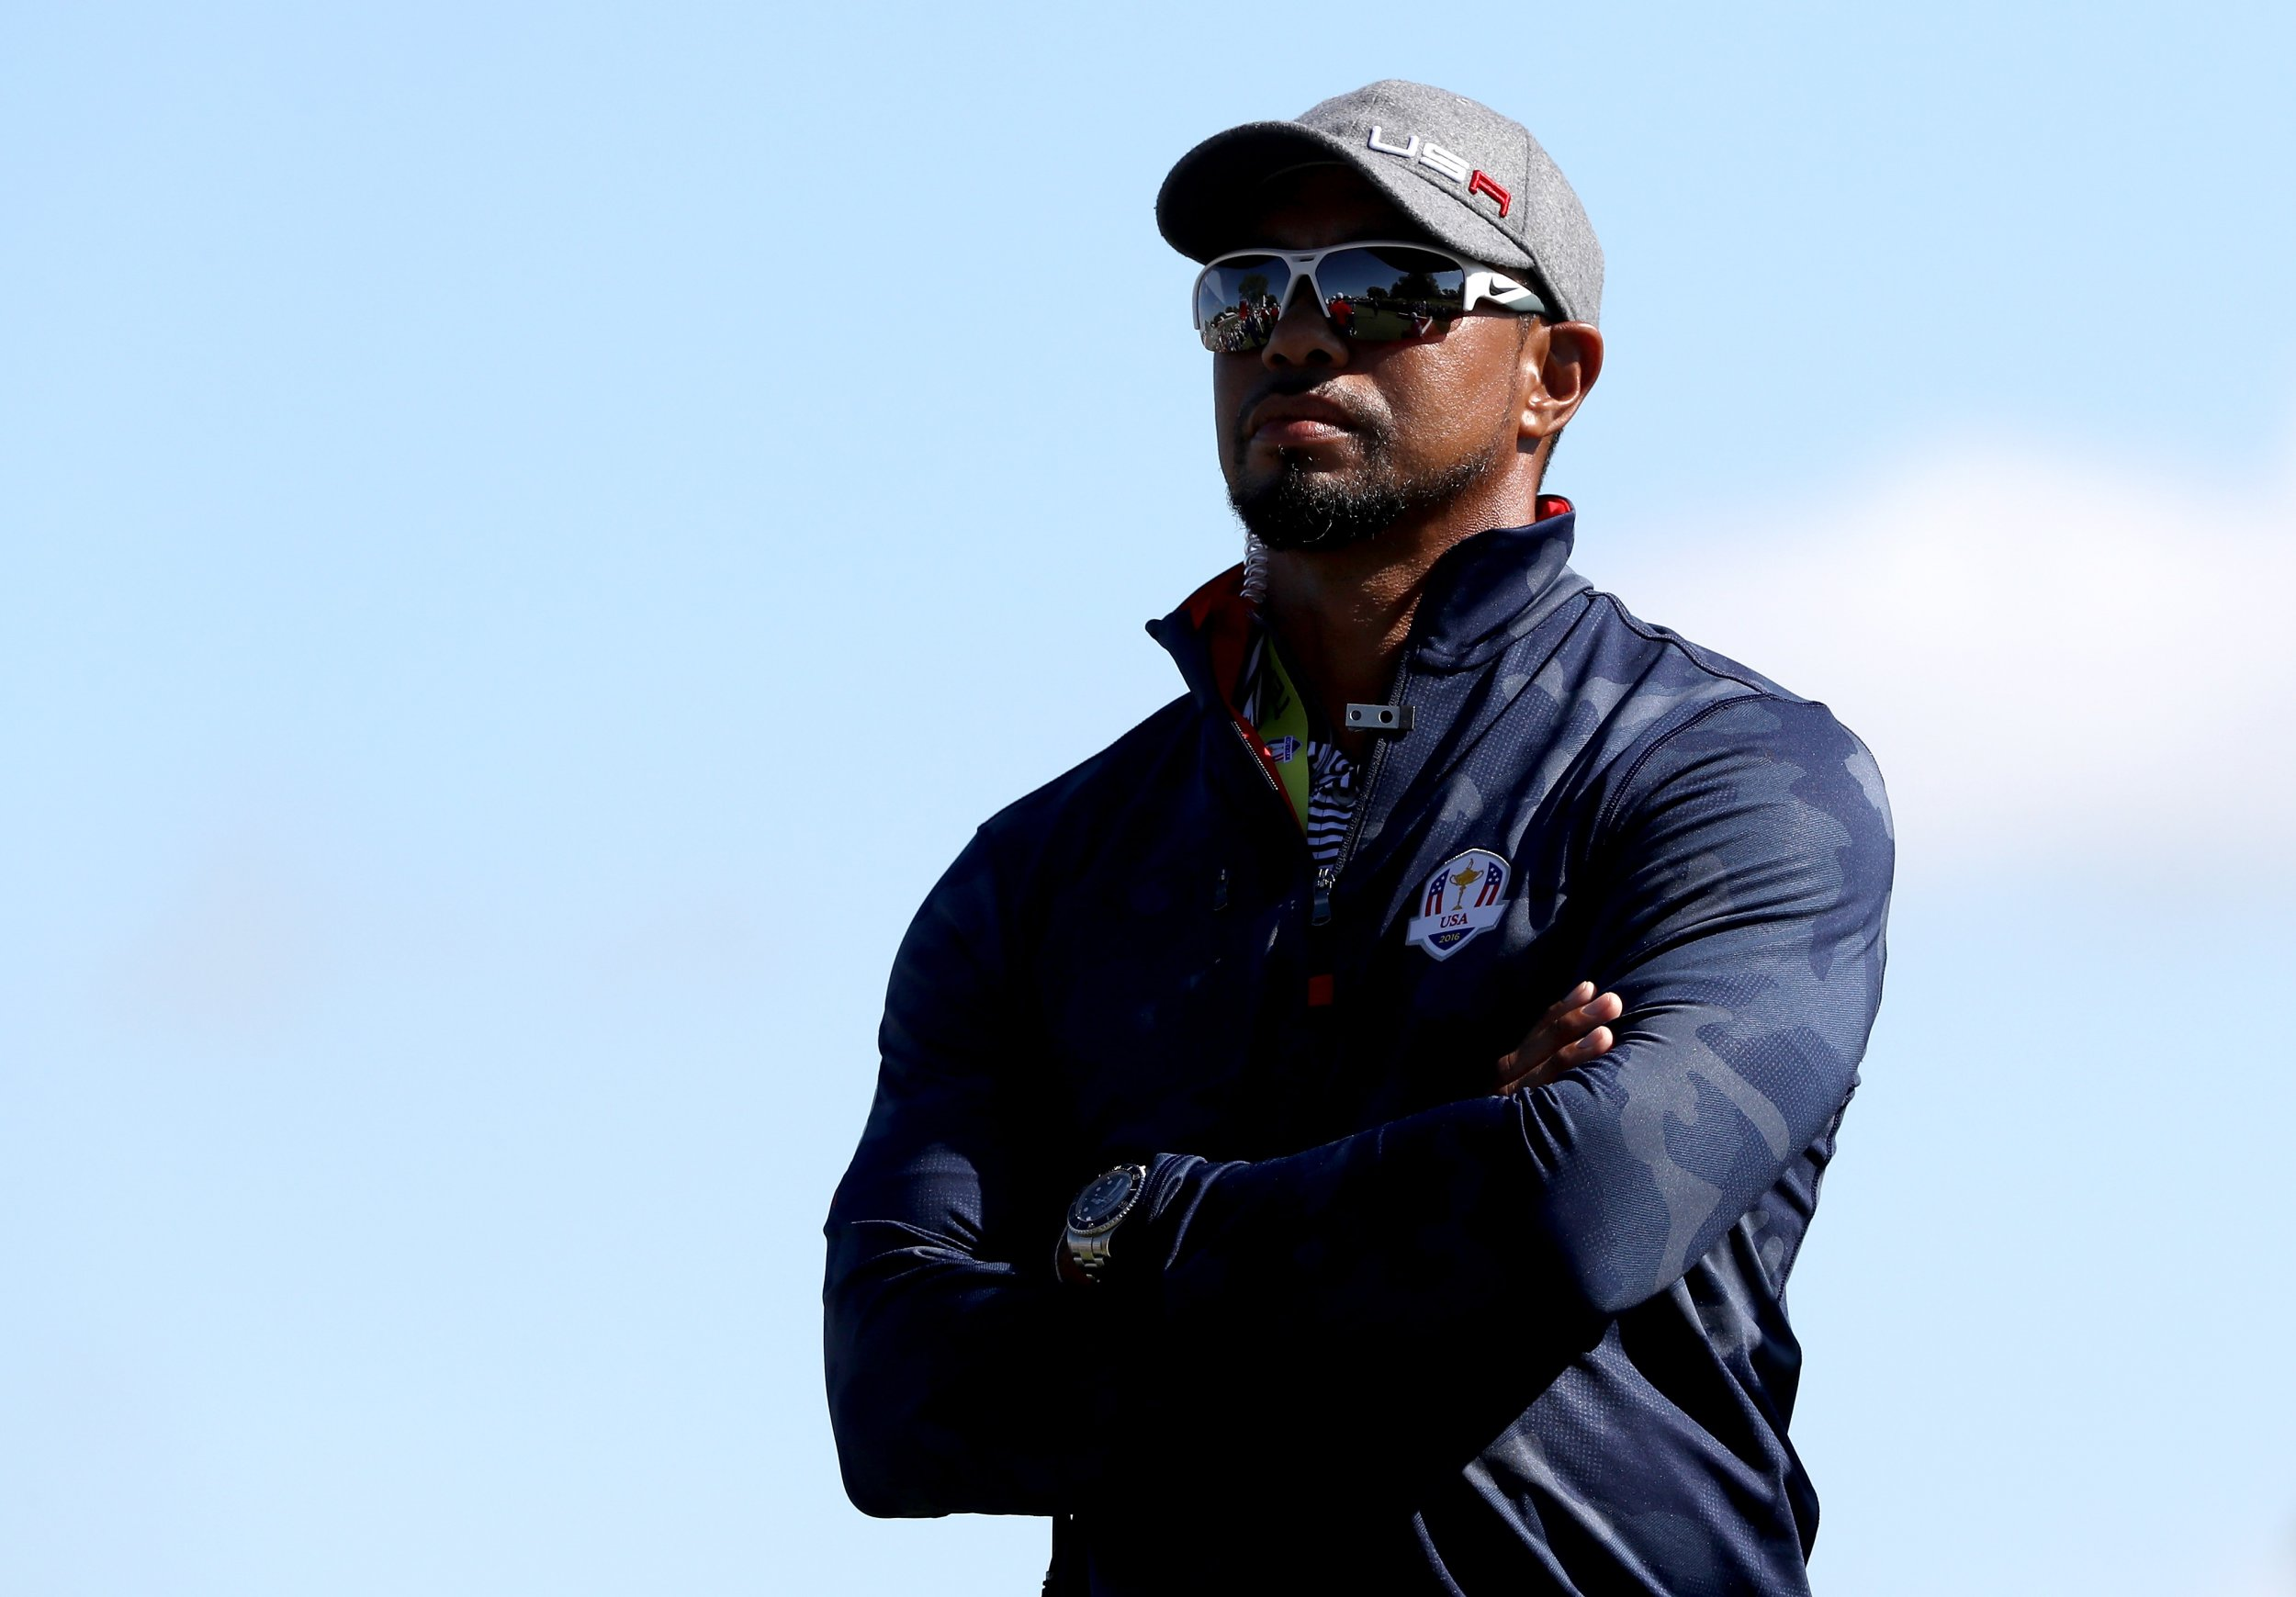 Tiger Woods: Tracing the Ryder Cup Struggles of a Golfing Icon